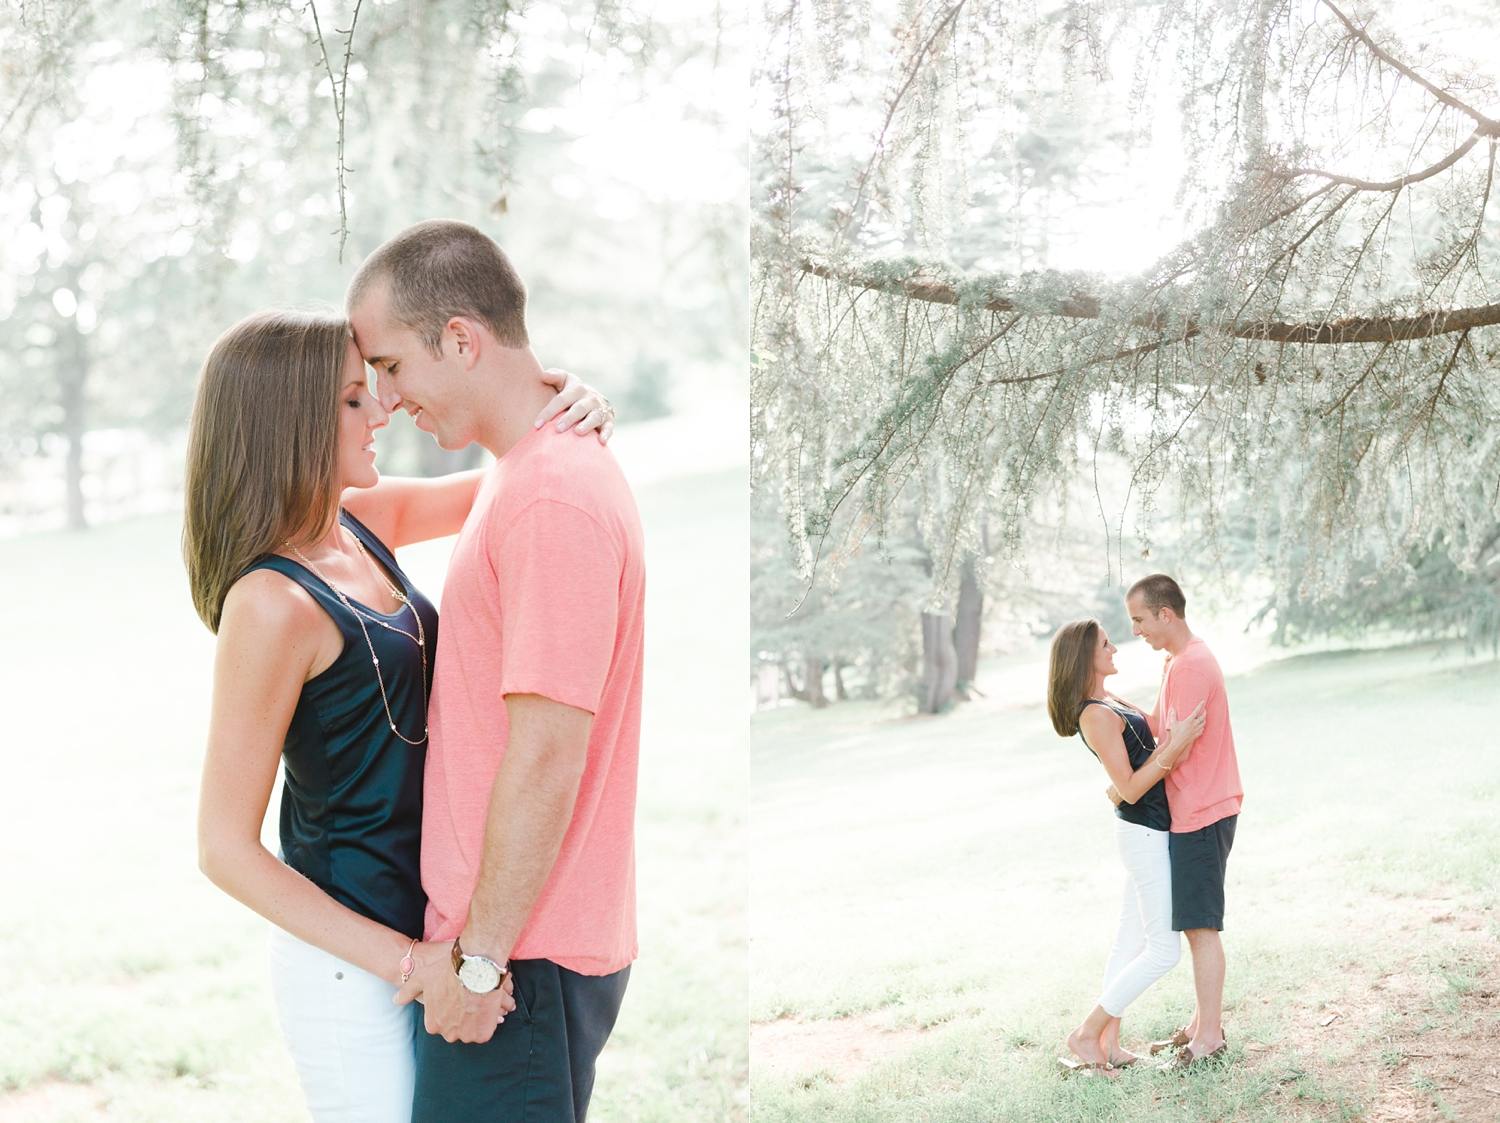 Maymon_Park_richmond_engagement_photography_0007.jpg